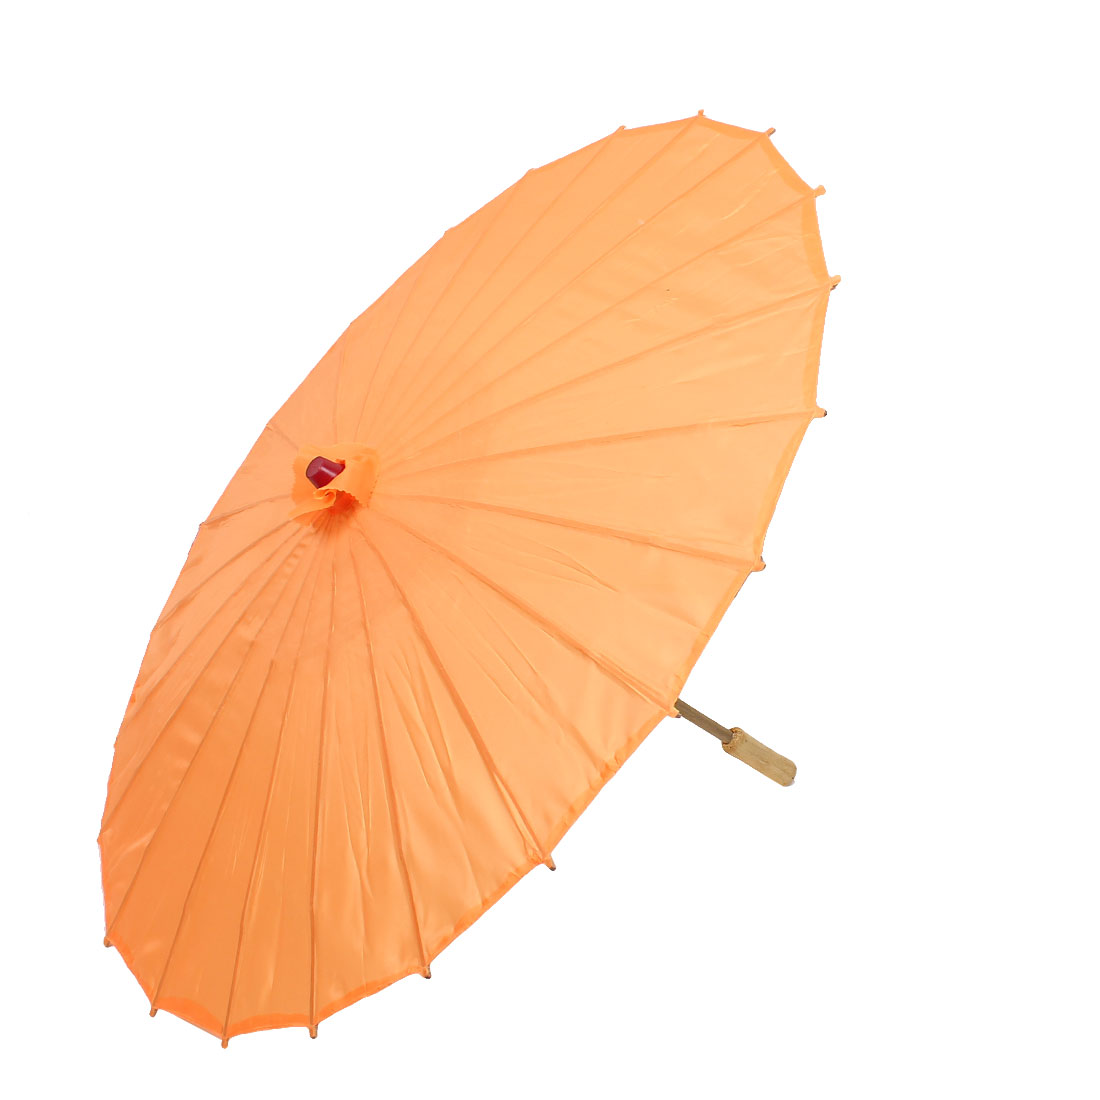 Bamboo Japanese Chinese Style Traditional Manually Dancing Umbrella Parasol Orange 78cm Dia